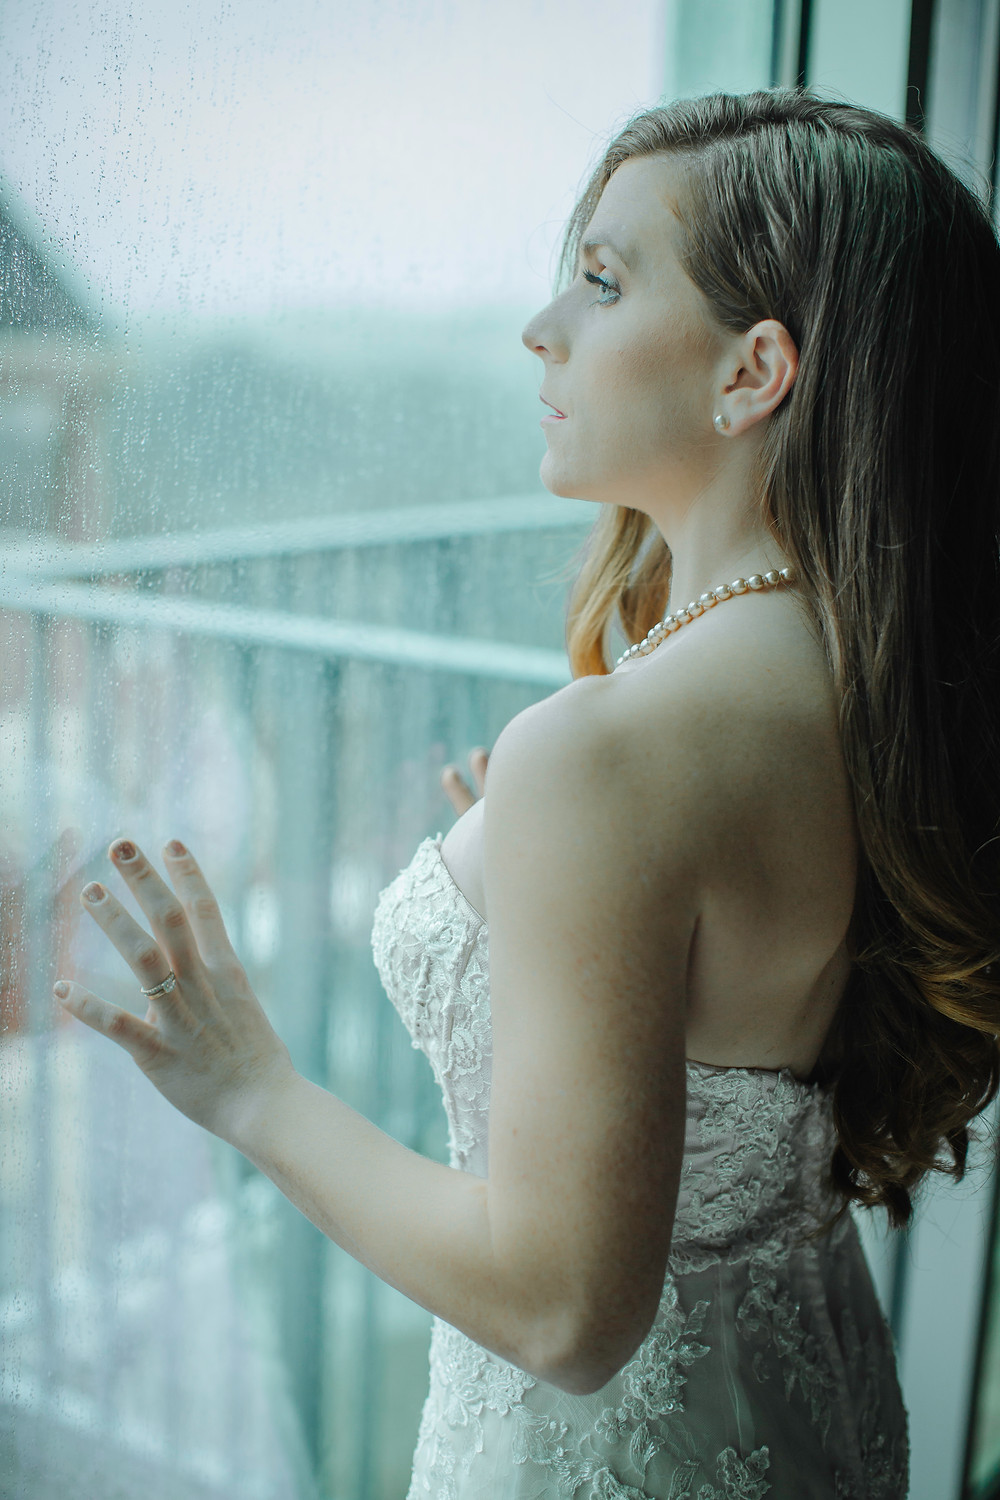 A woman in a bridal gown with pearls around her neck looks out a window with her hands pressed against the glass.